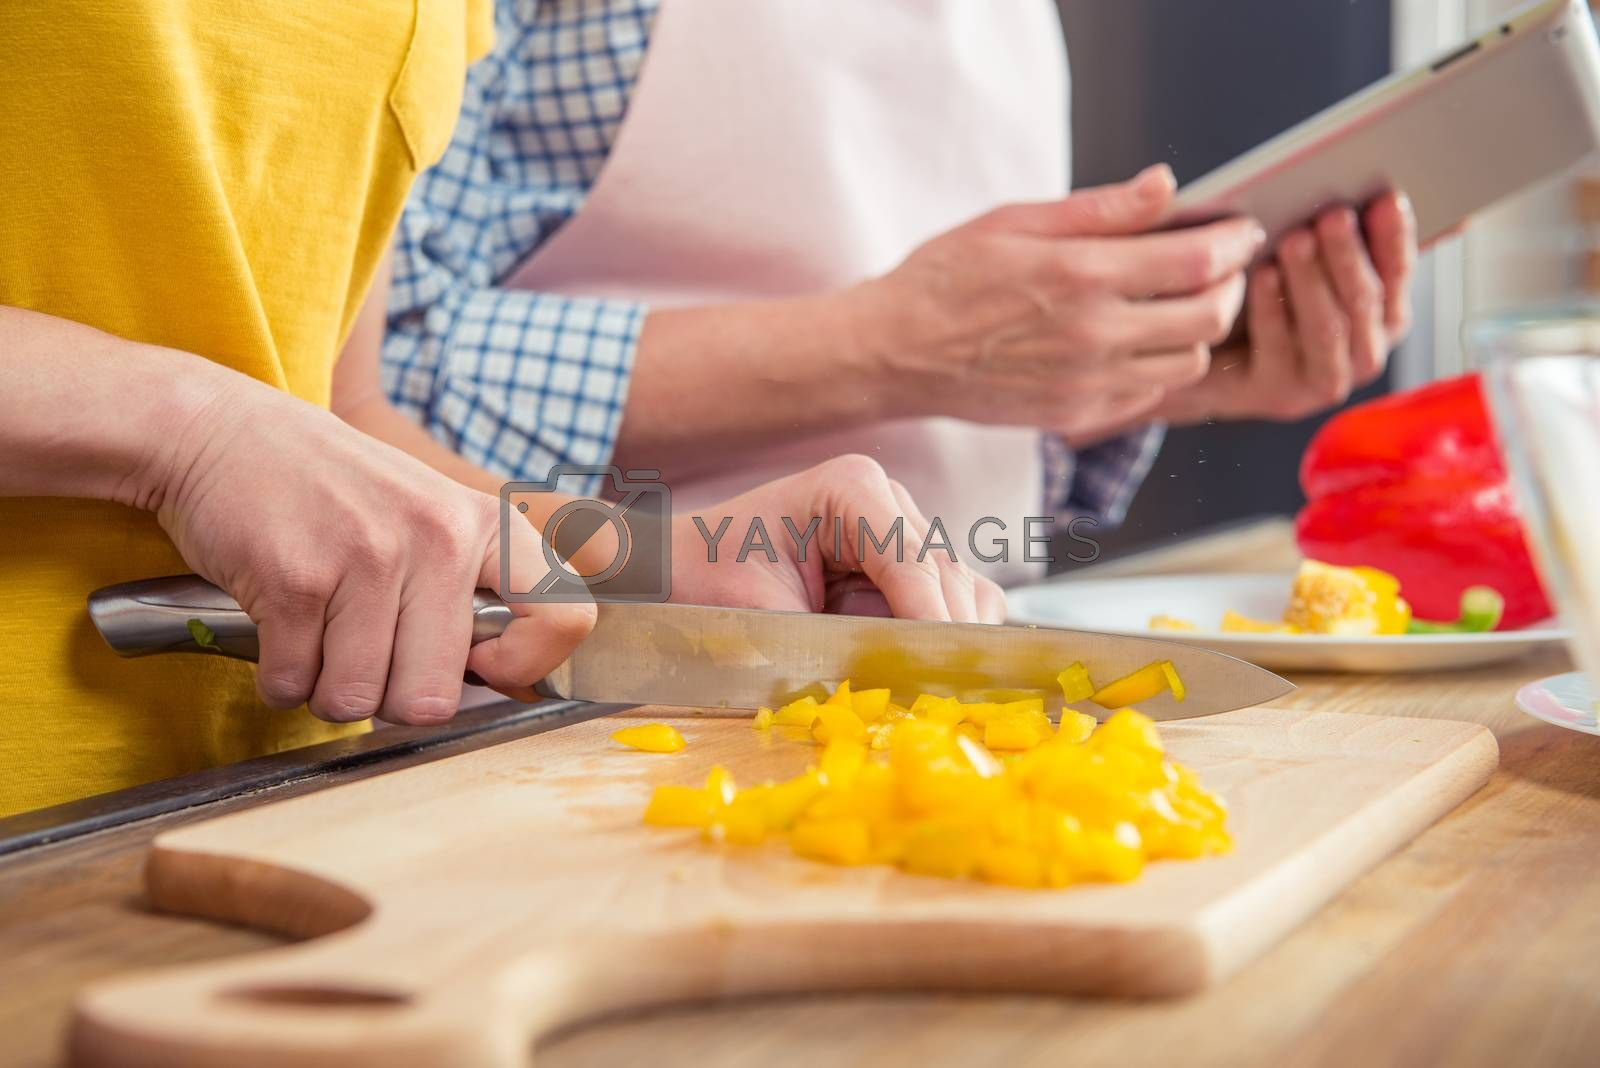 Close-up partial view of woman cutting pepper on cutting board